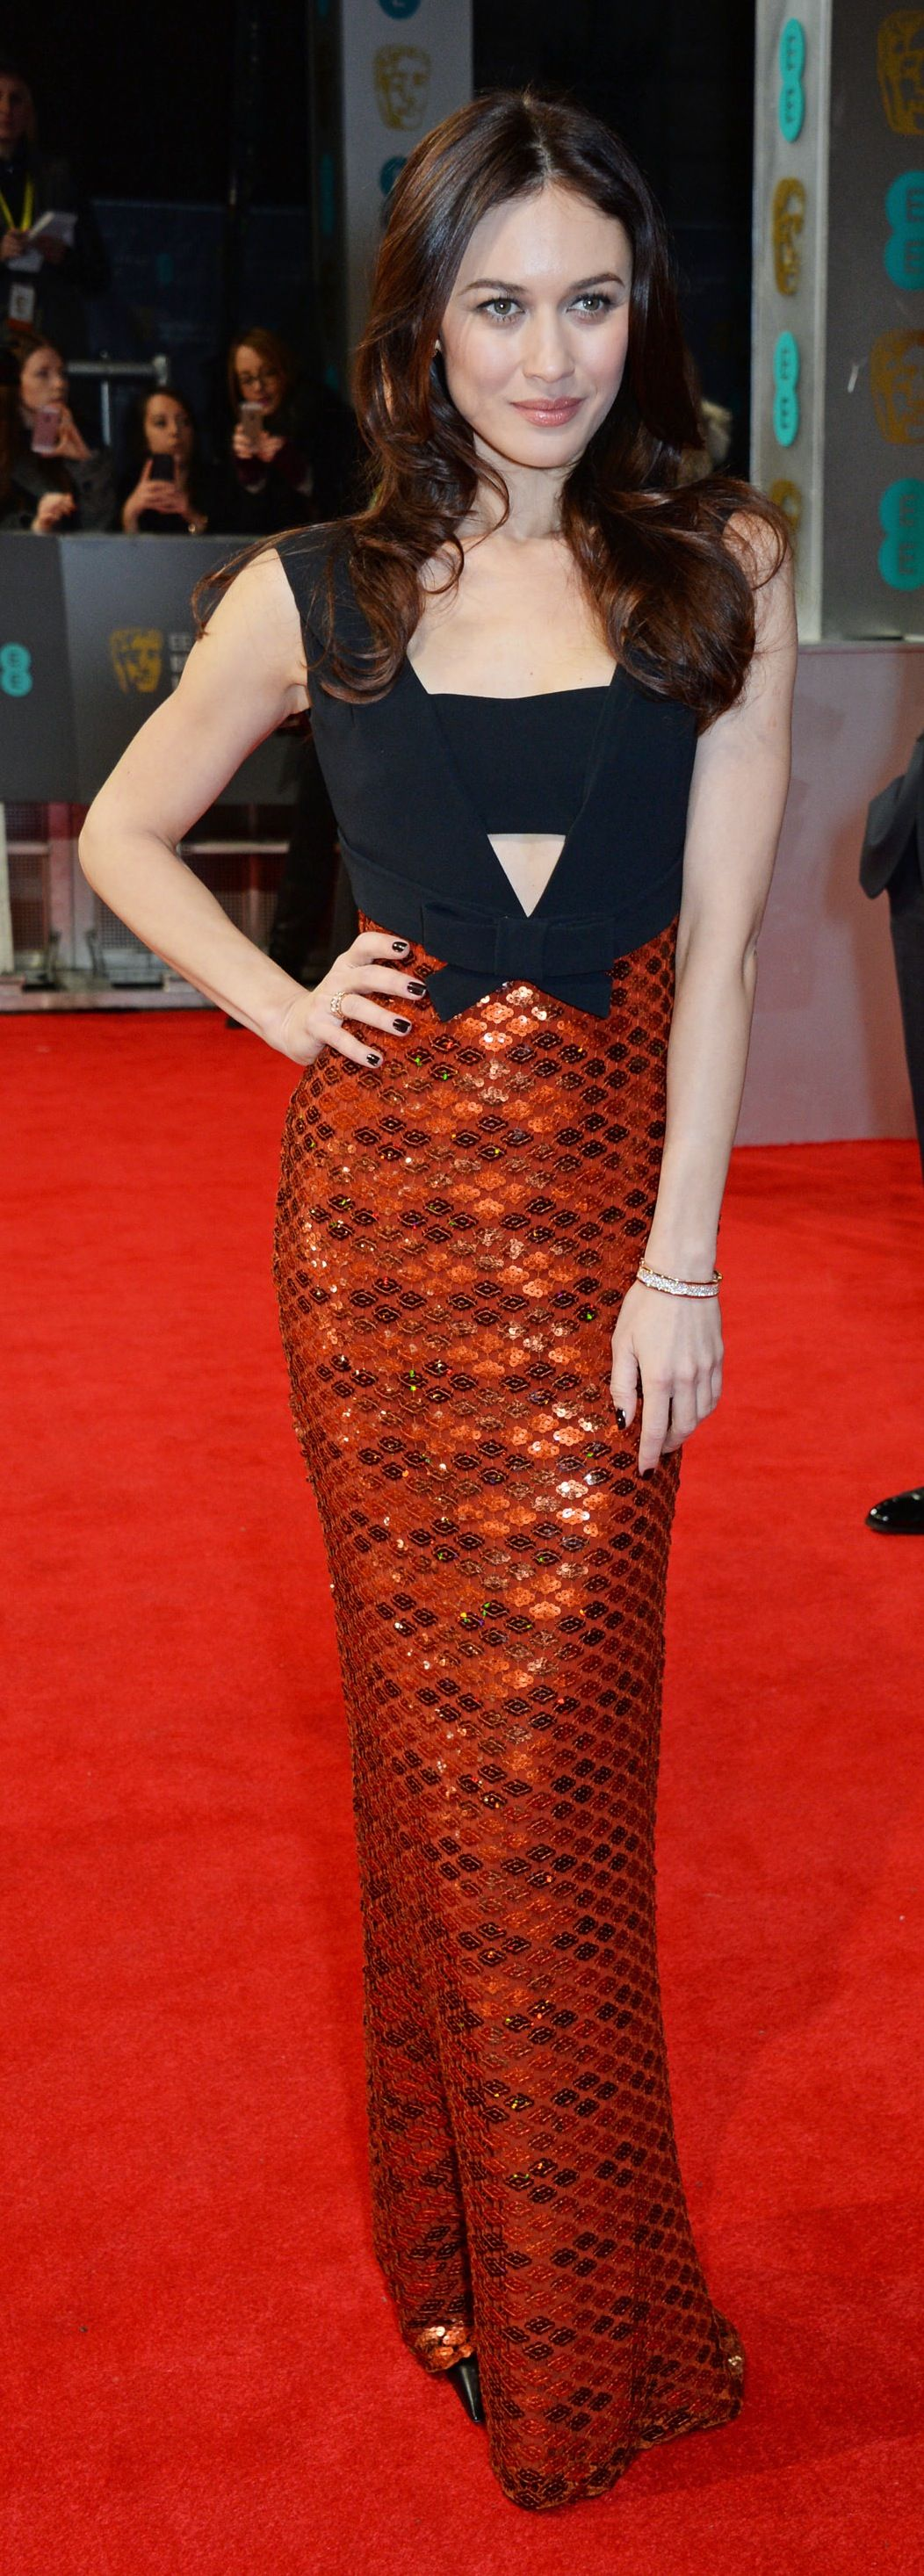 Roter Teppich Promis French Actress Olga Kurylenko Wearing A Burberry Dress To